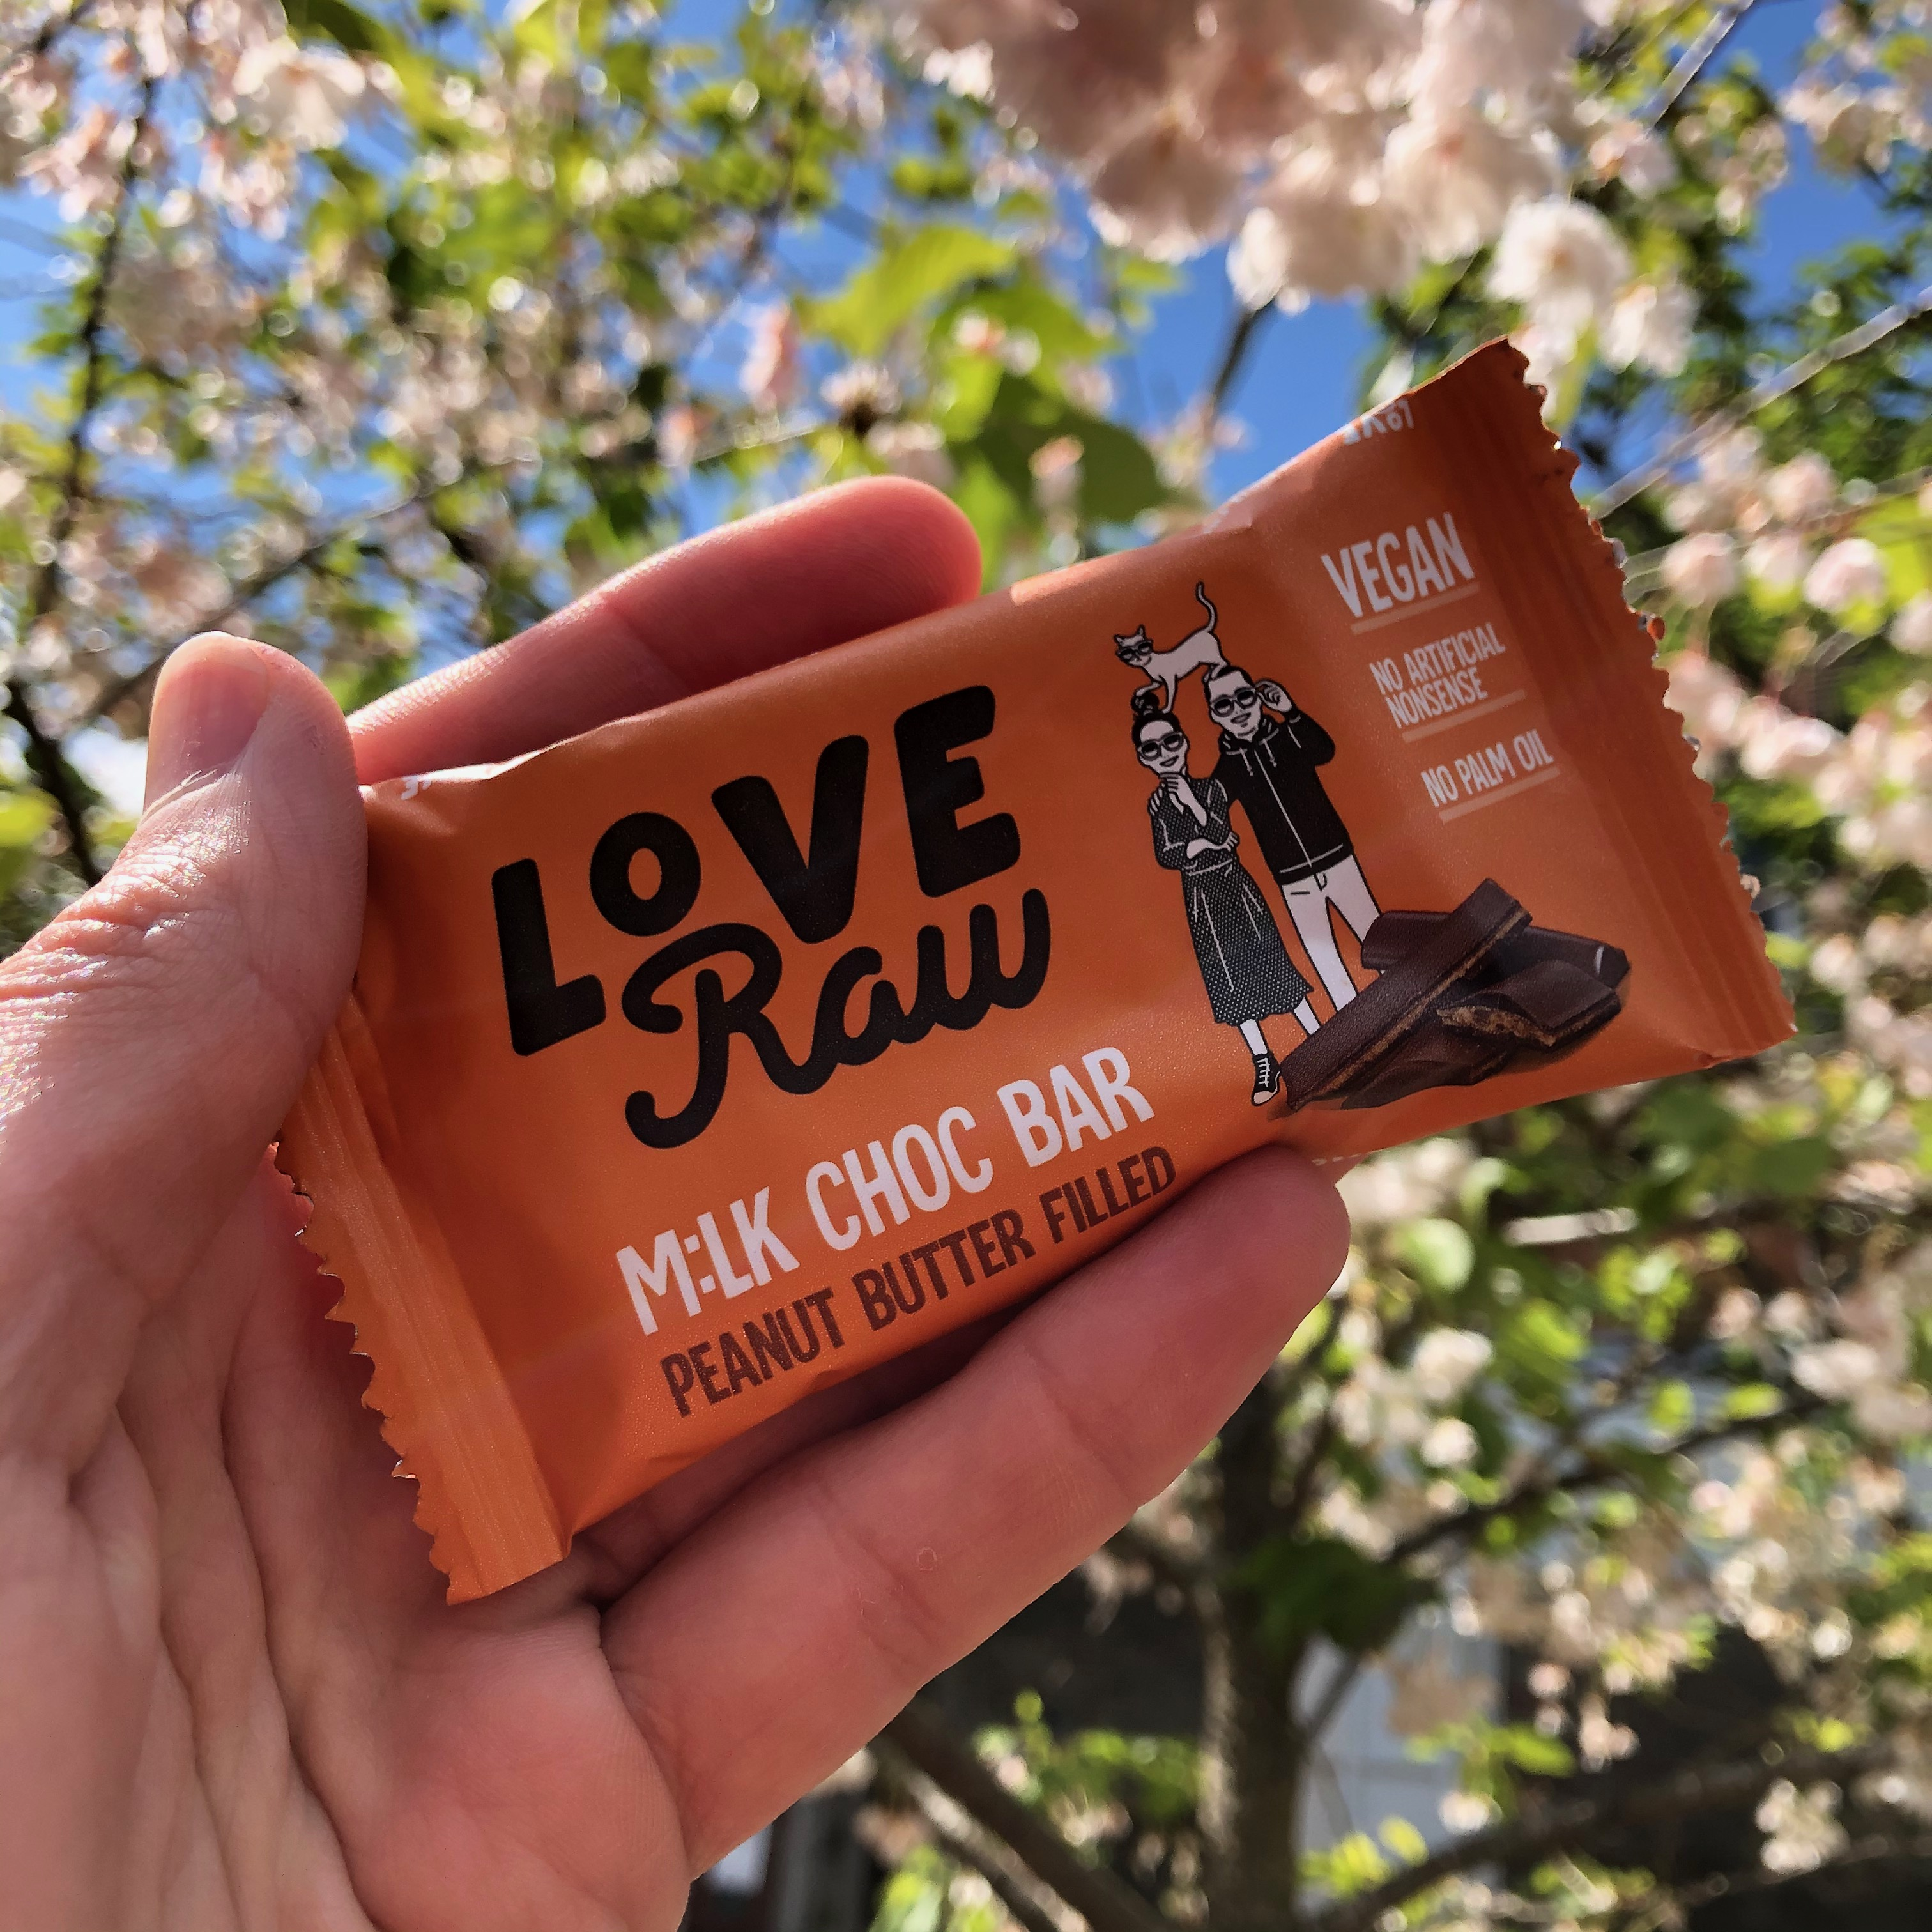 Loveraw Peanut Butter Milk Bar 30g